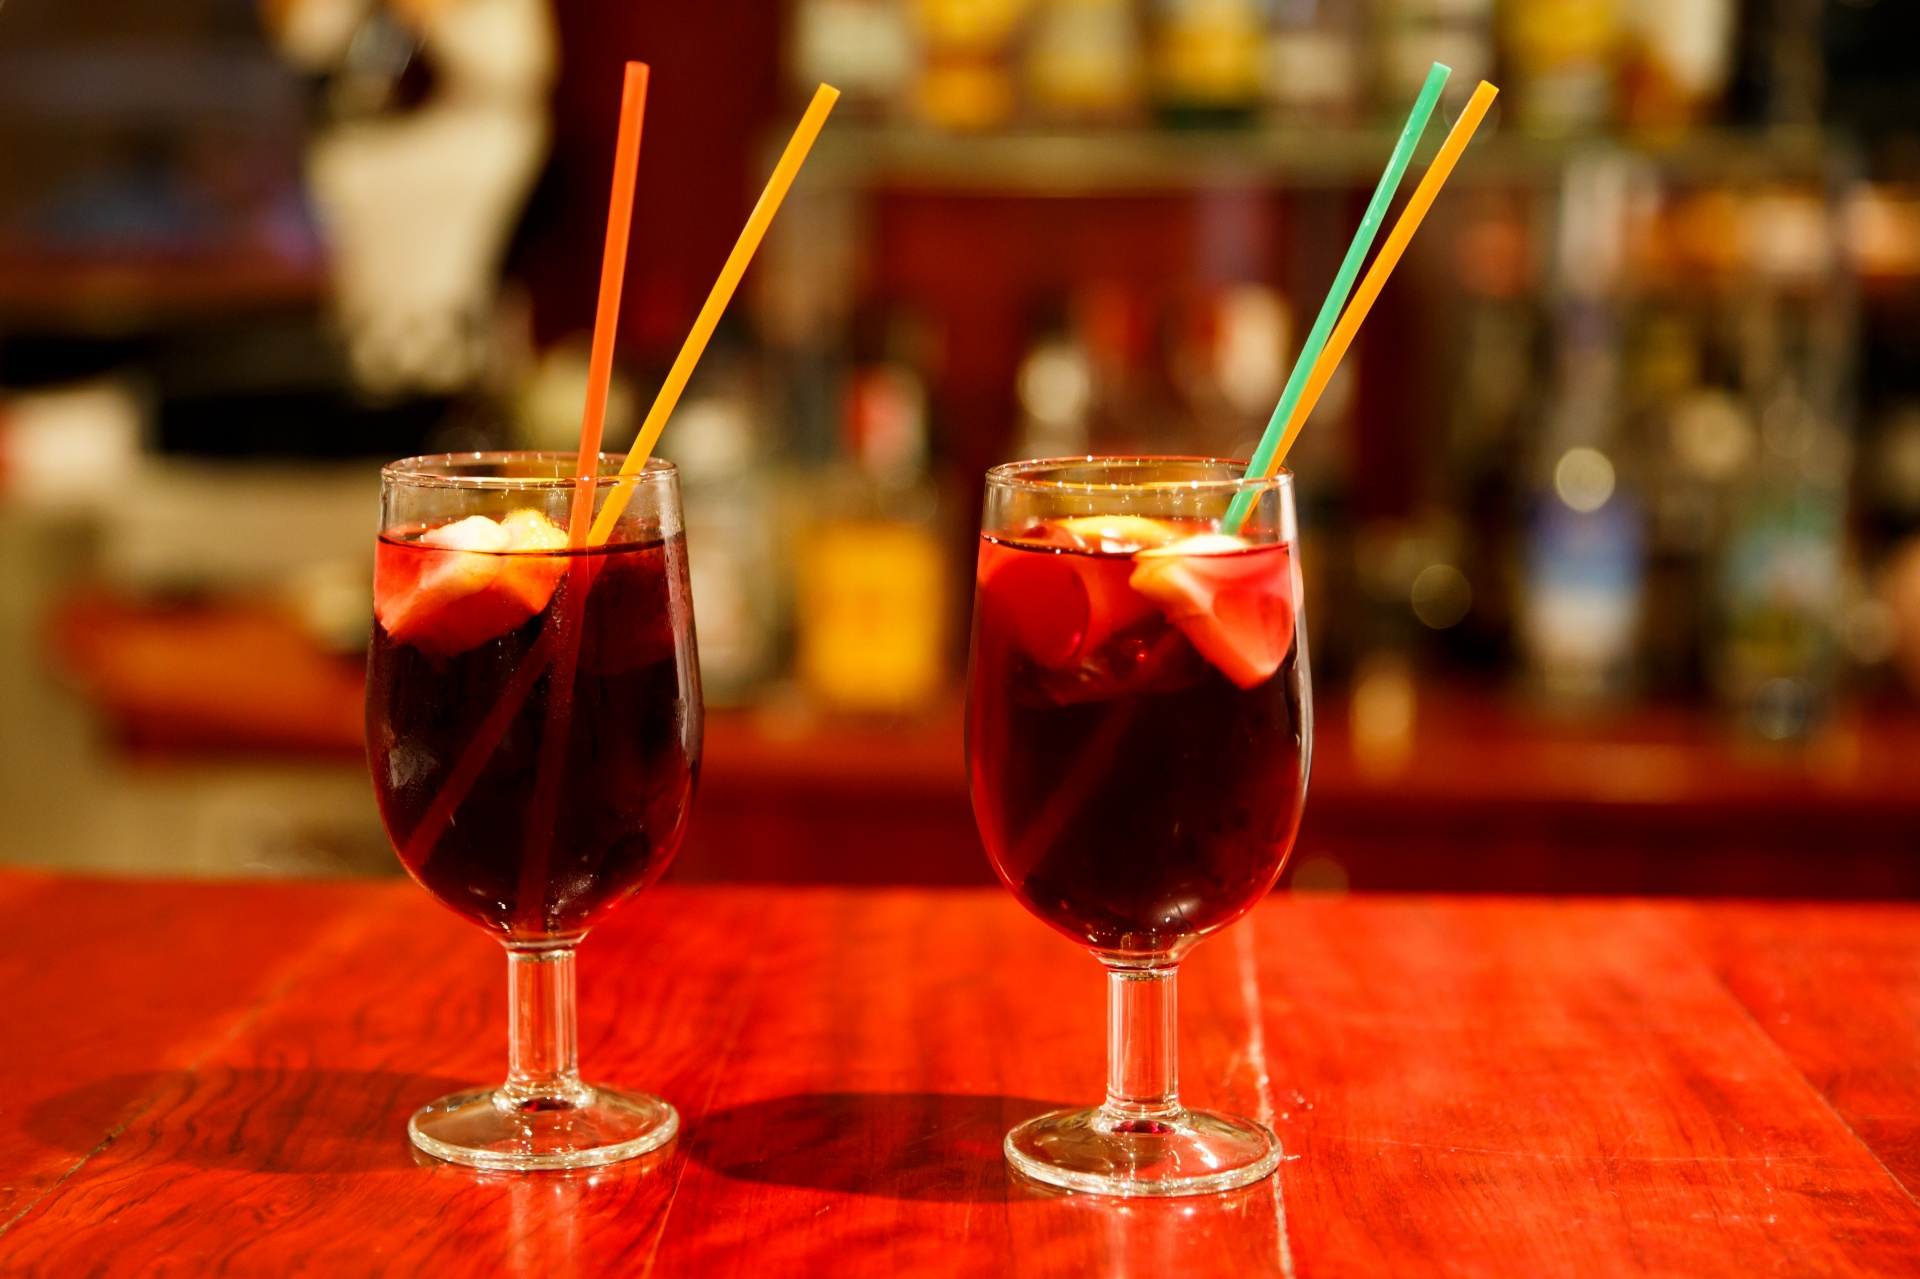 sangria drinks - study Spanish at Academia CILE in Malaga